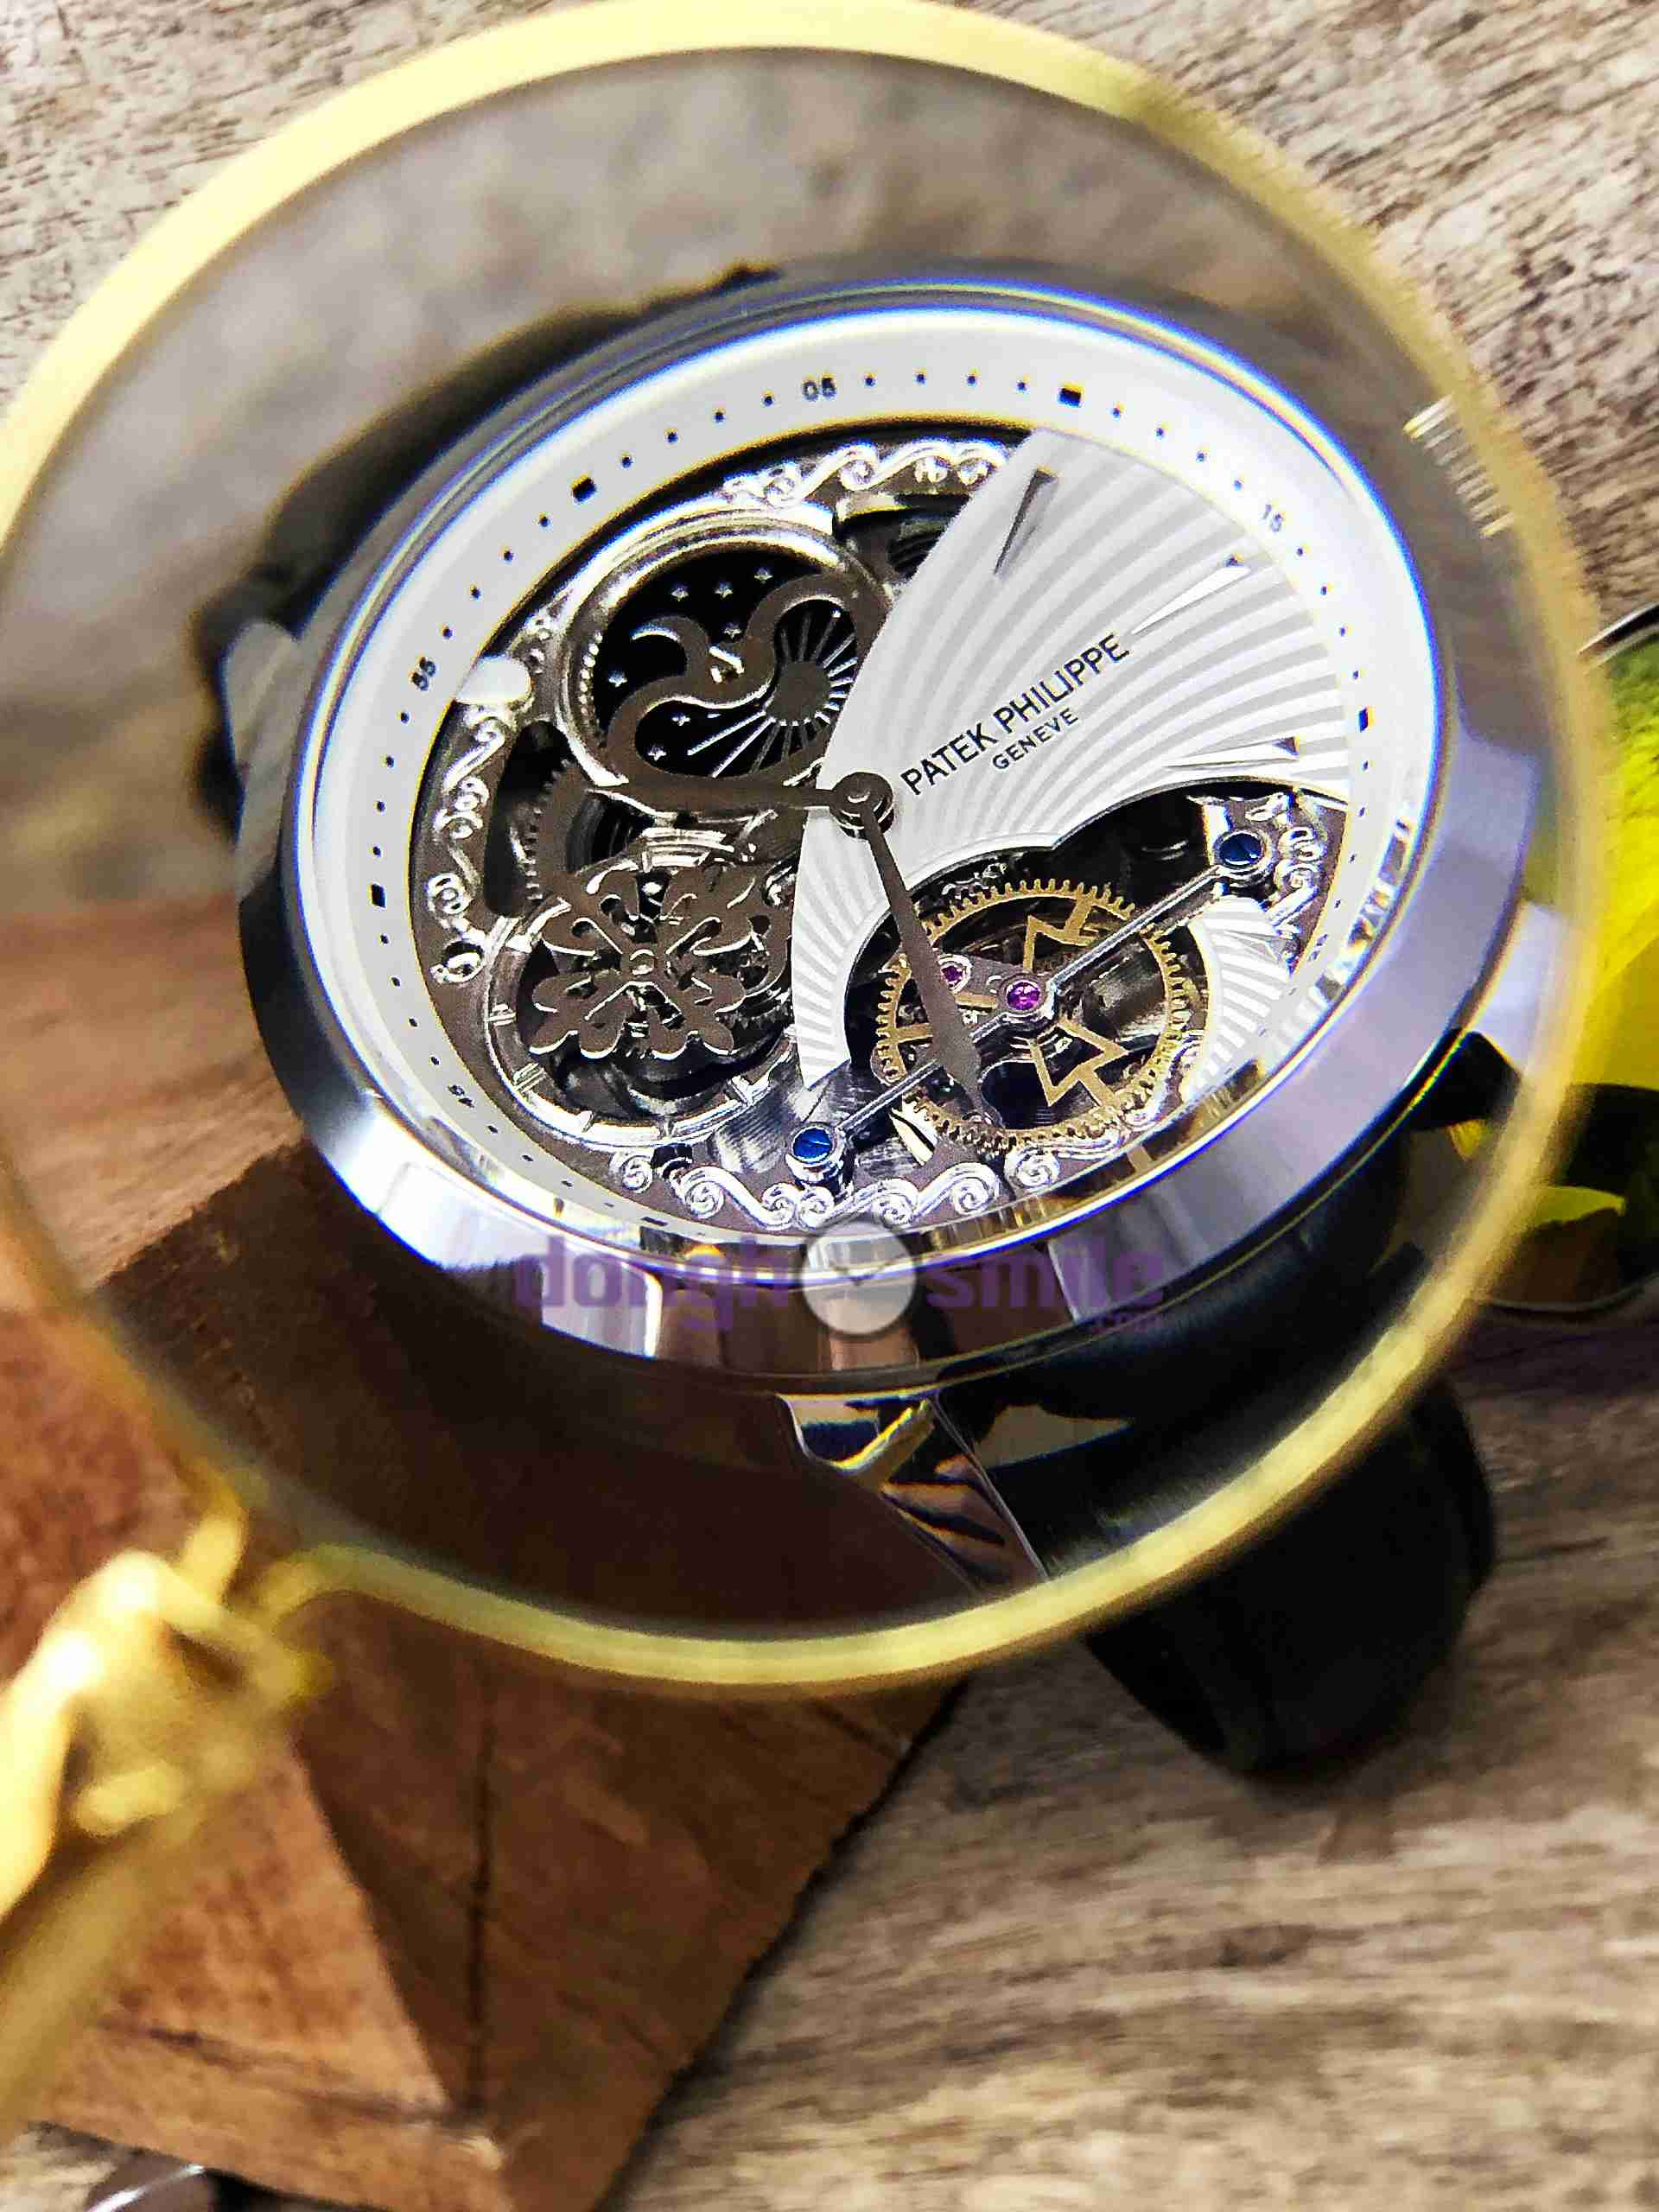 dong-ho-patek-philippe-geneve-gia-tot-a-pp114-3